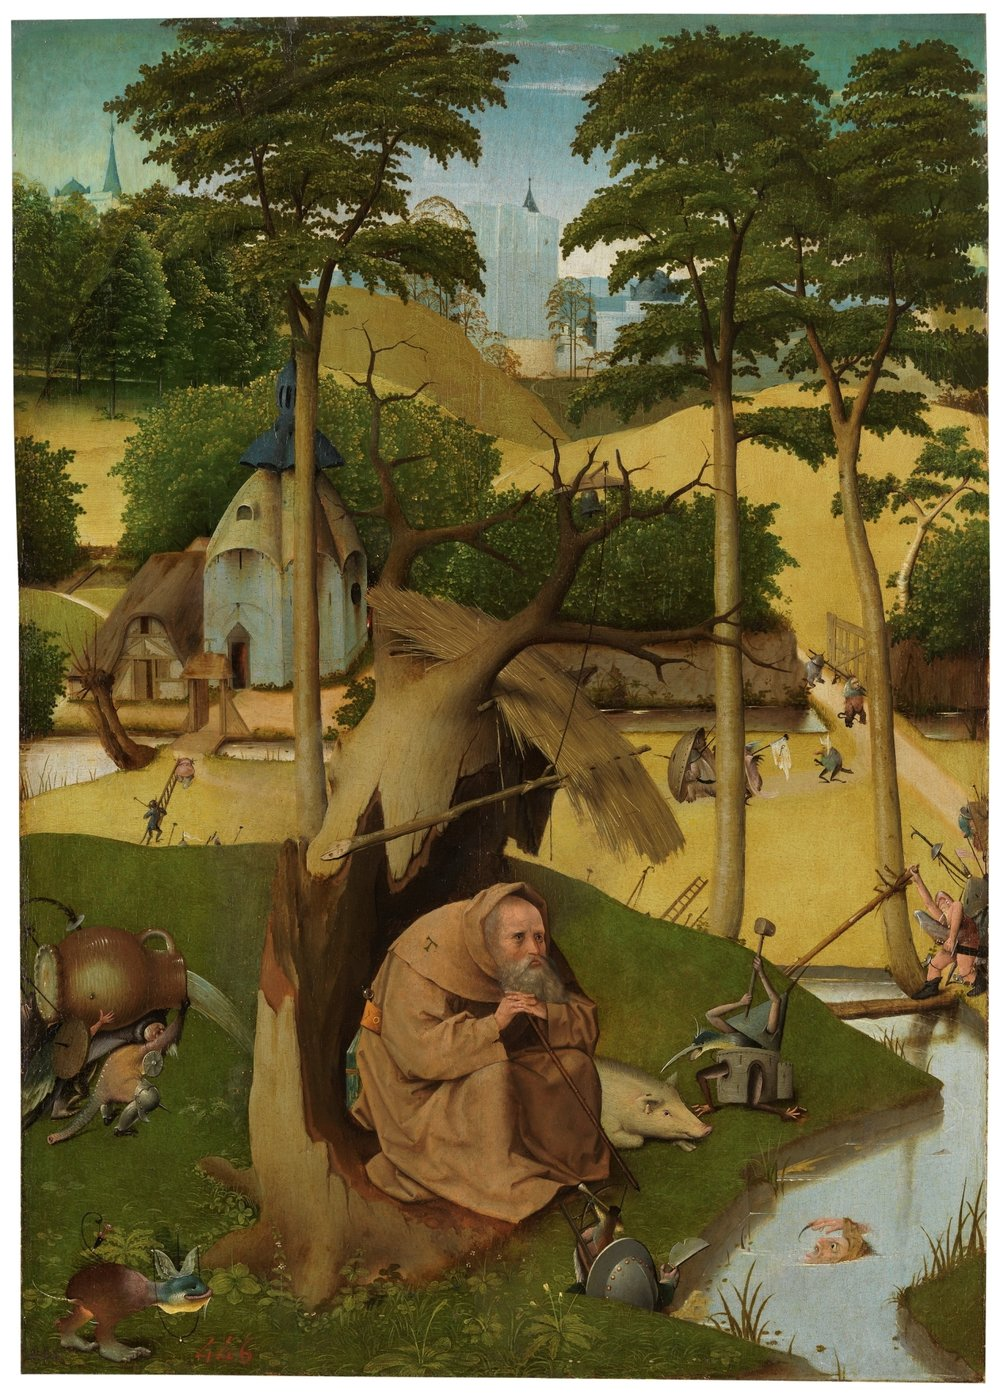 The Temptations of Saint Anthony - BOSCH, HIERONYMUS  Museo Nacional del Prado  ©   By the end of his life, Anthony learned to co-exist with the demons.